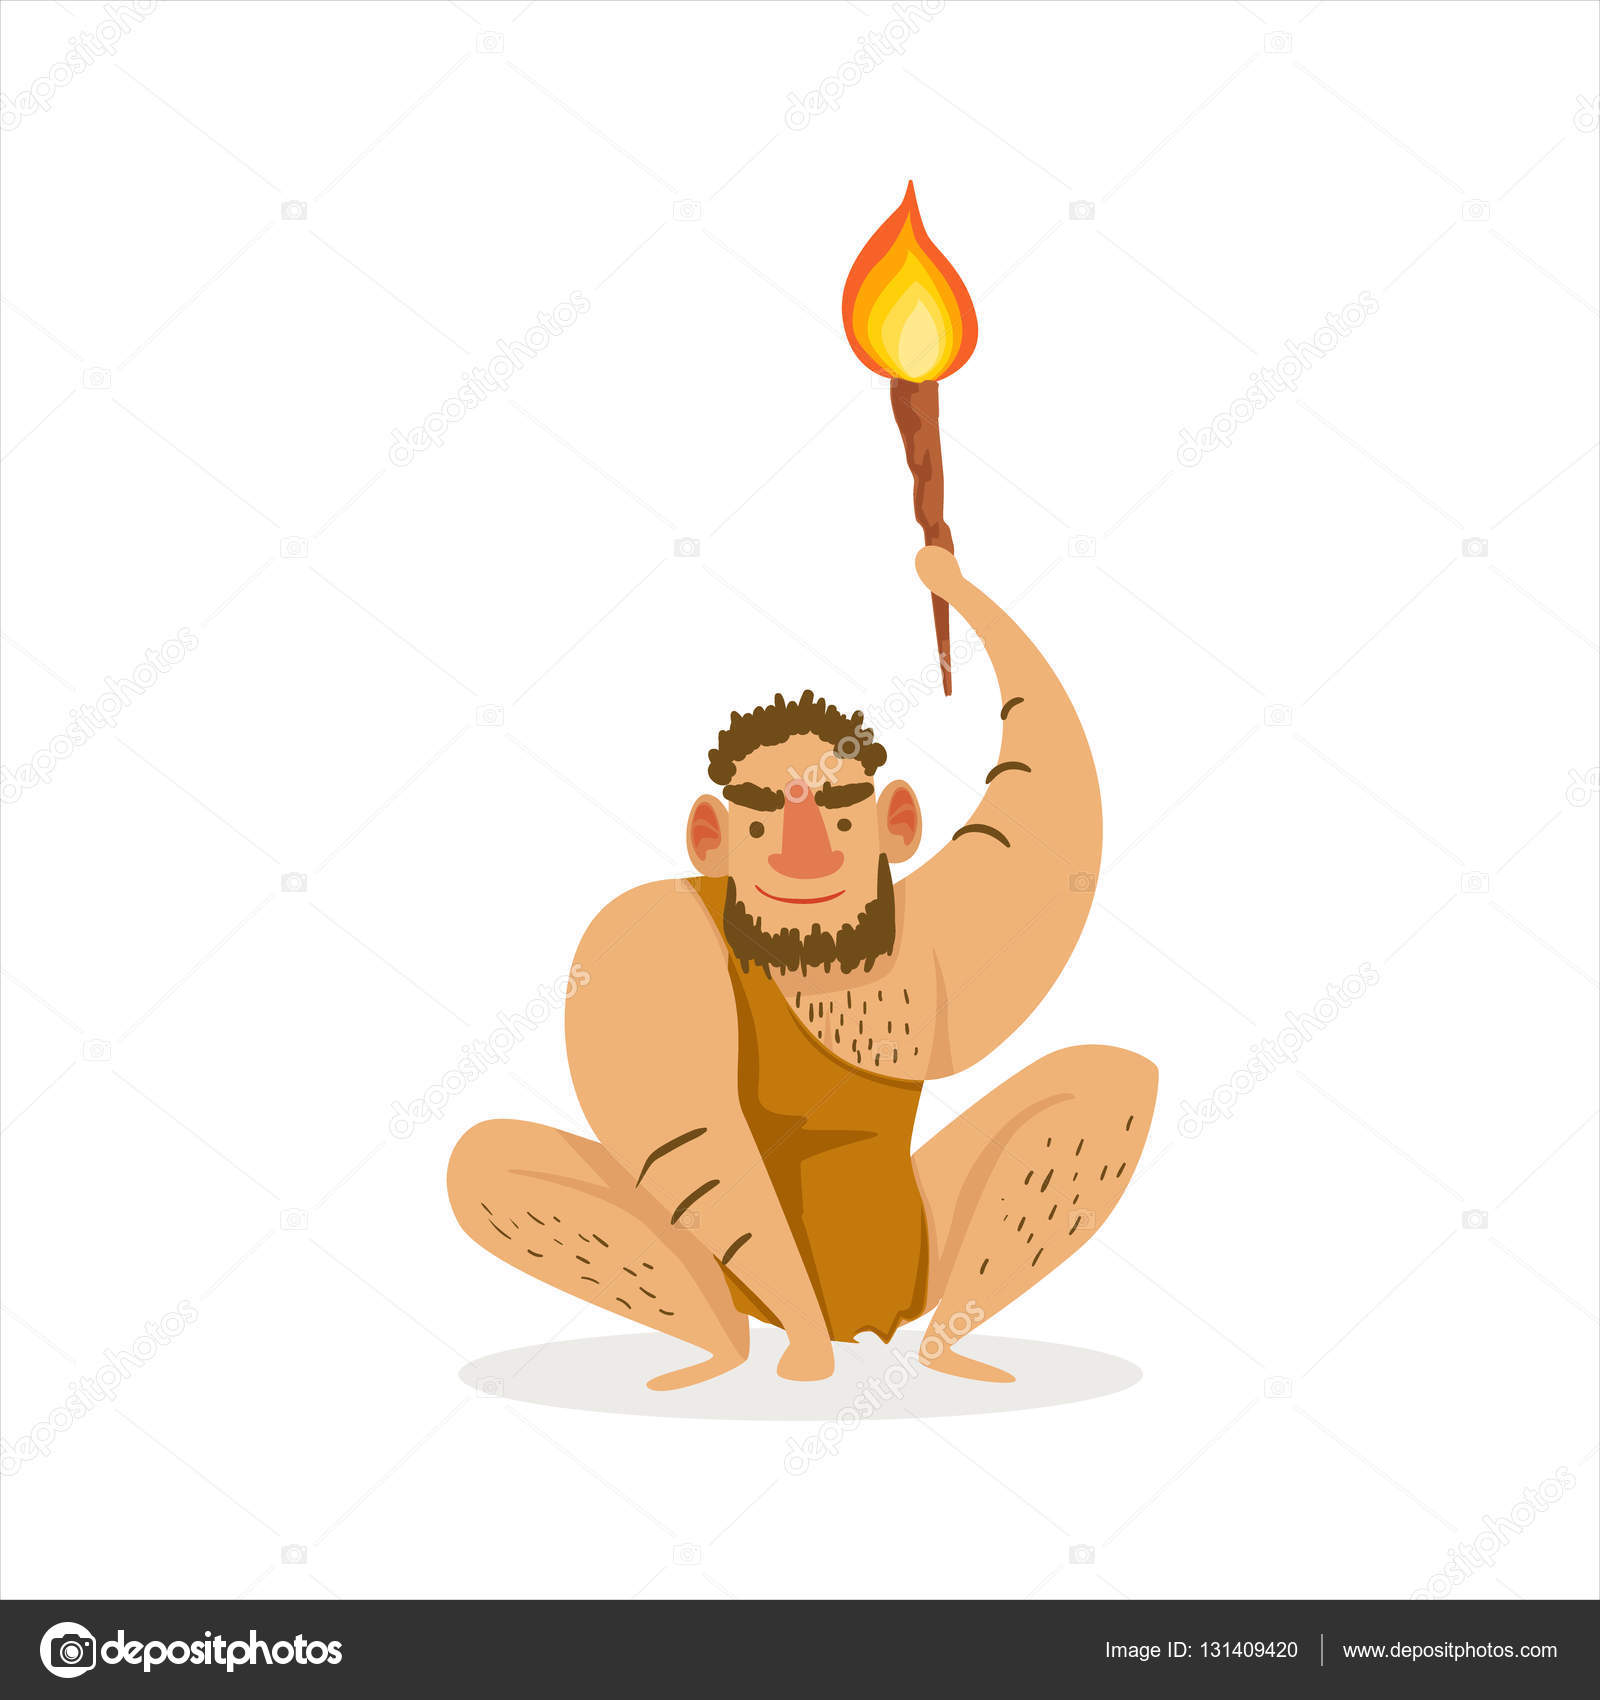 Hairy Man Crouching With Alite Torch Cartoon Illustration Of First Homo  Sapiens Troglodyte In Animal Pelt